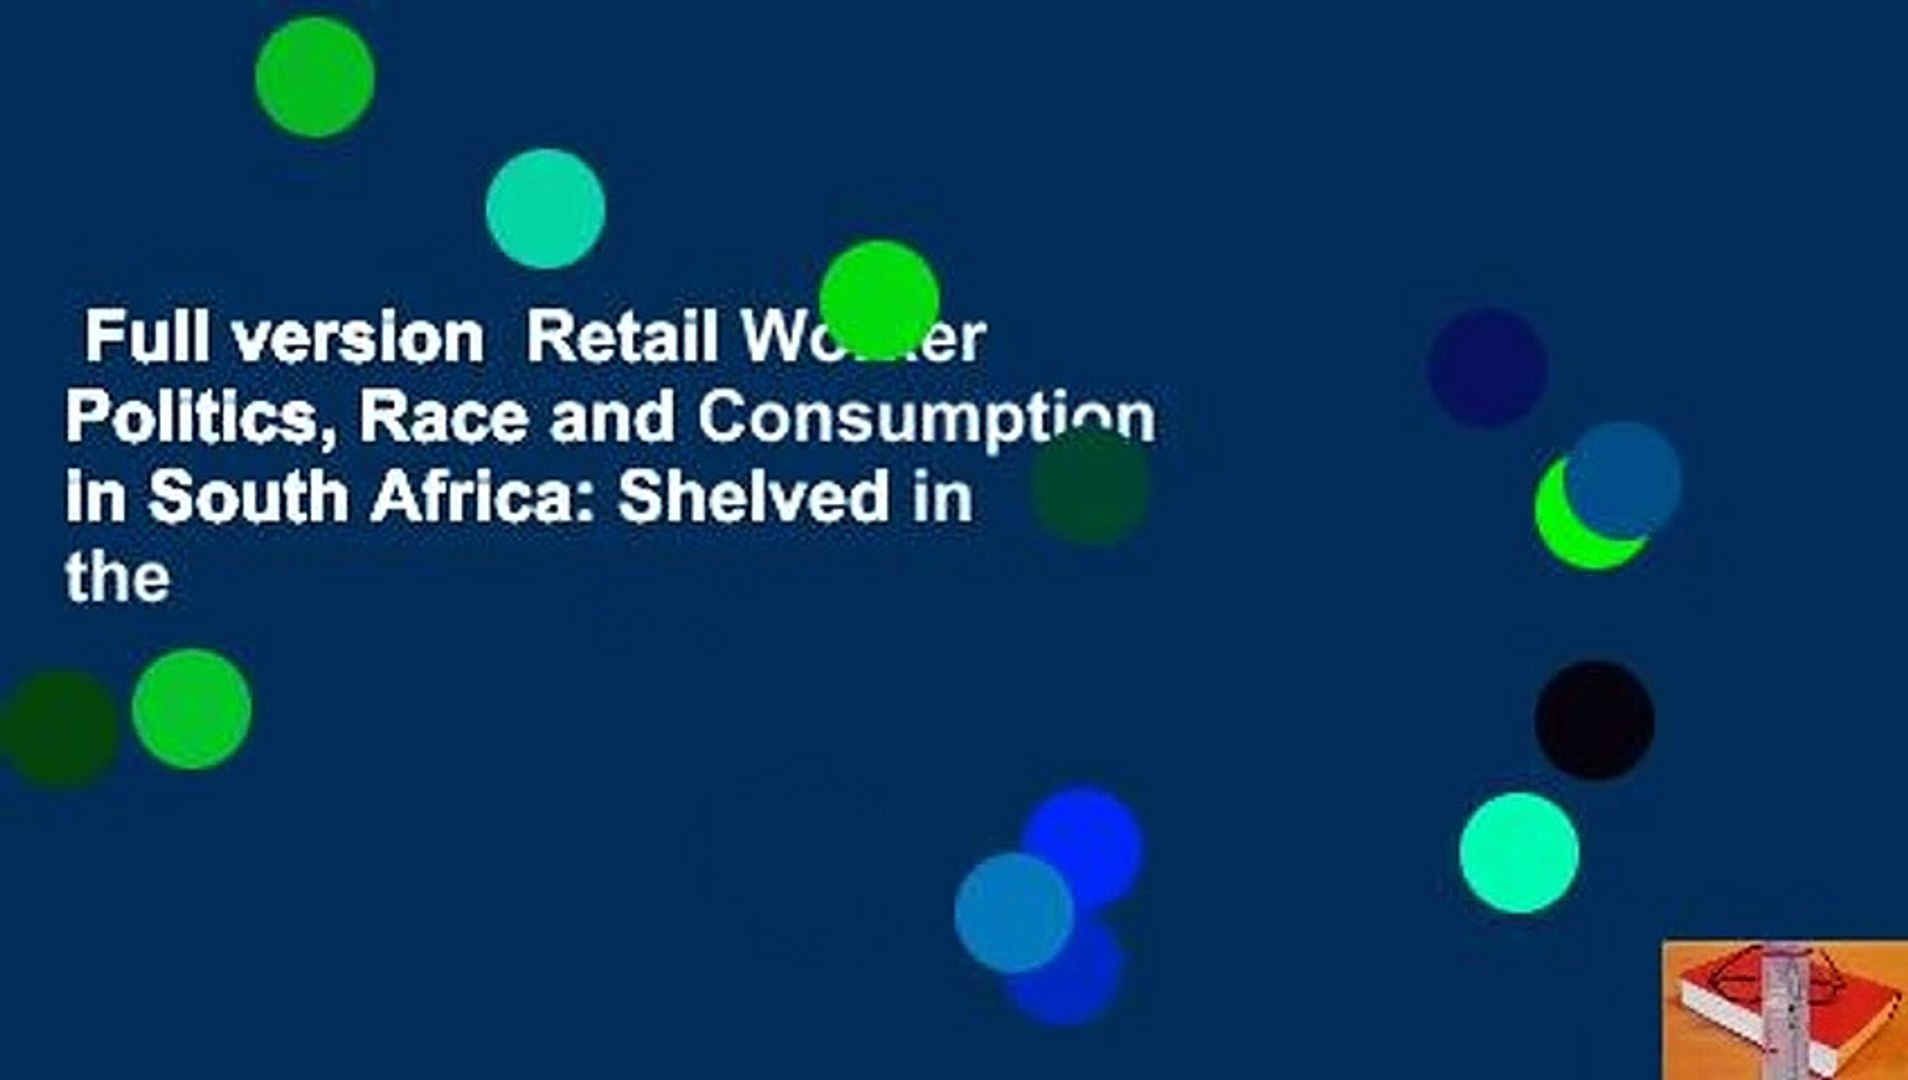 Full version  Retail Worker Politics, Race and Consumption in South Africa: Shelved in the